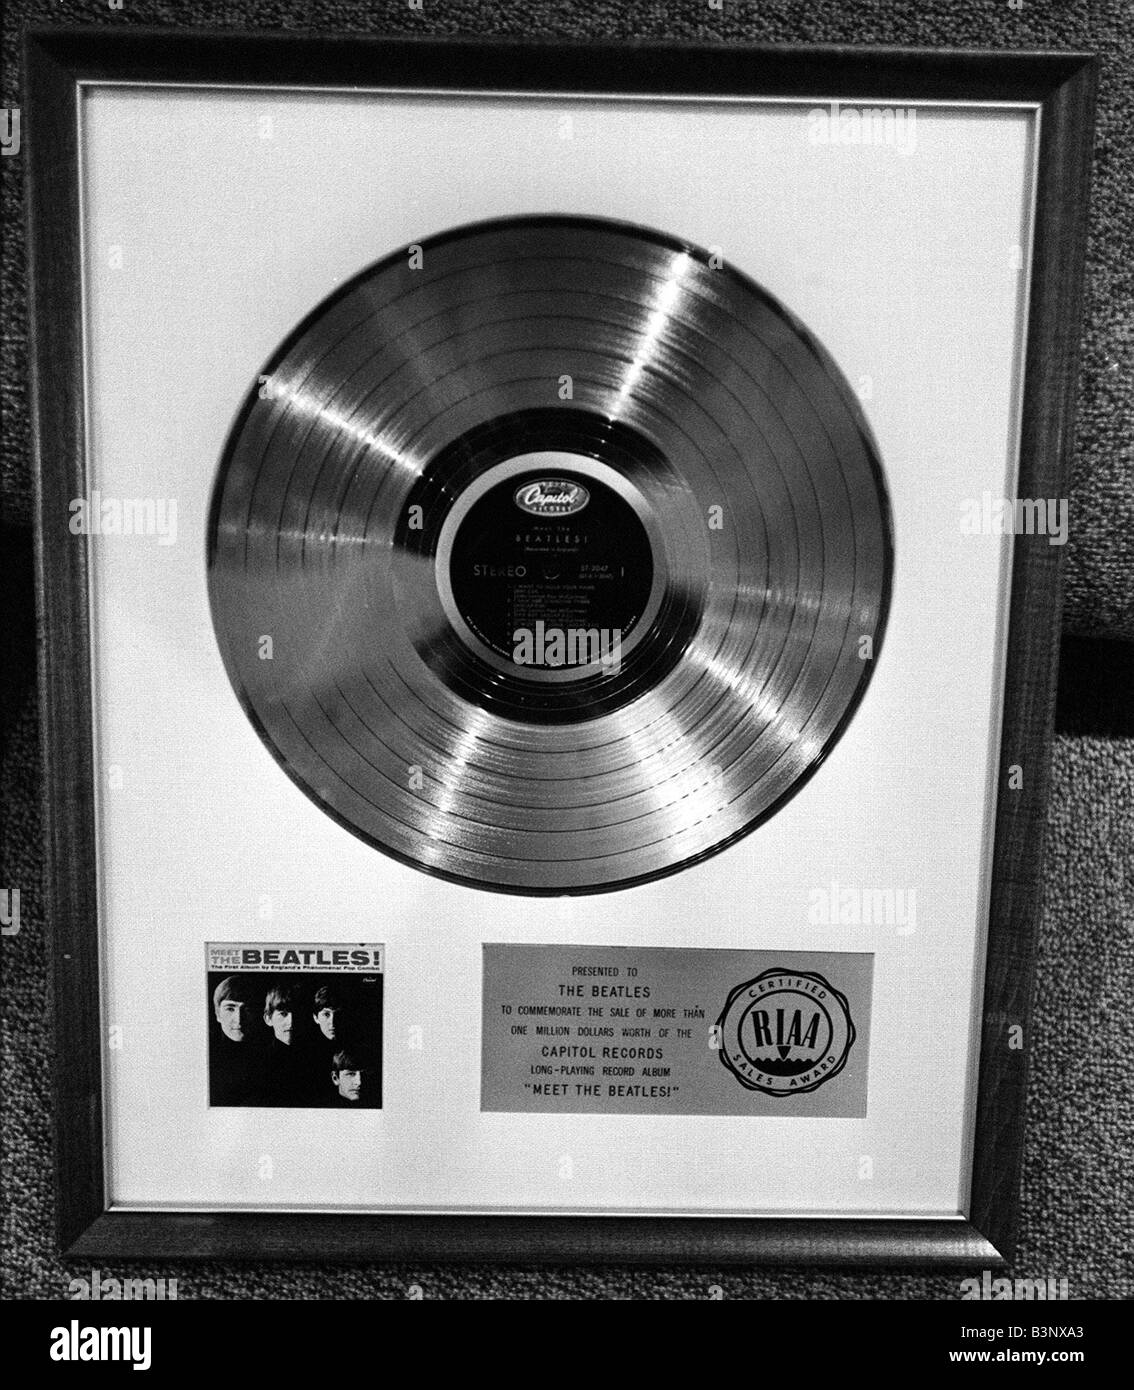 The Beatles February 1964 The Beatles disc awarded to The Beatles to commemorate the sale of more than One Million - Stock Image